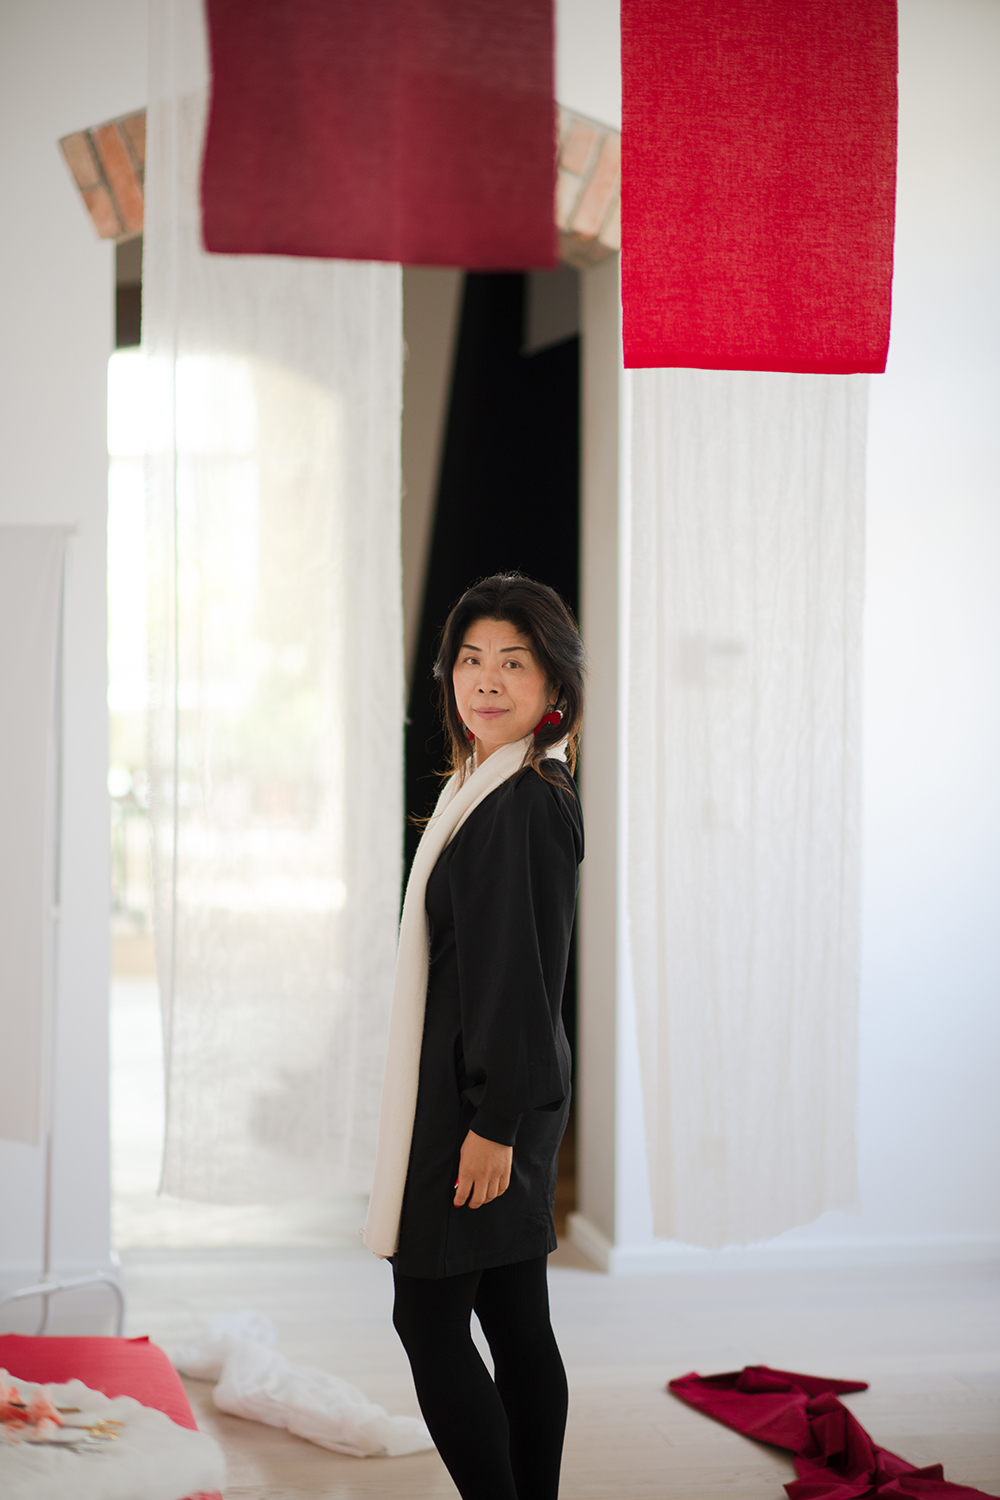 How Dr. Mei Huang Provides Sharing, Connecting and Healing in Berlin